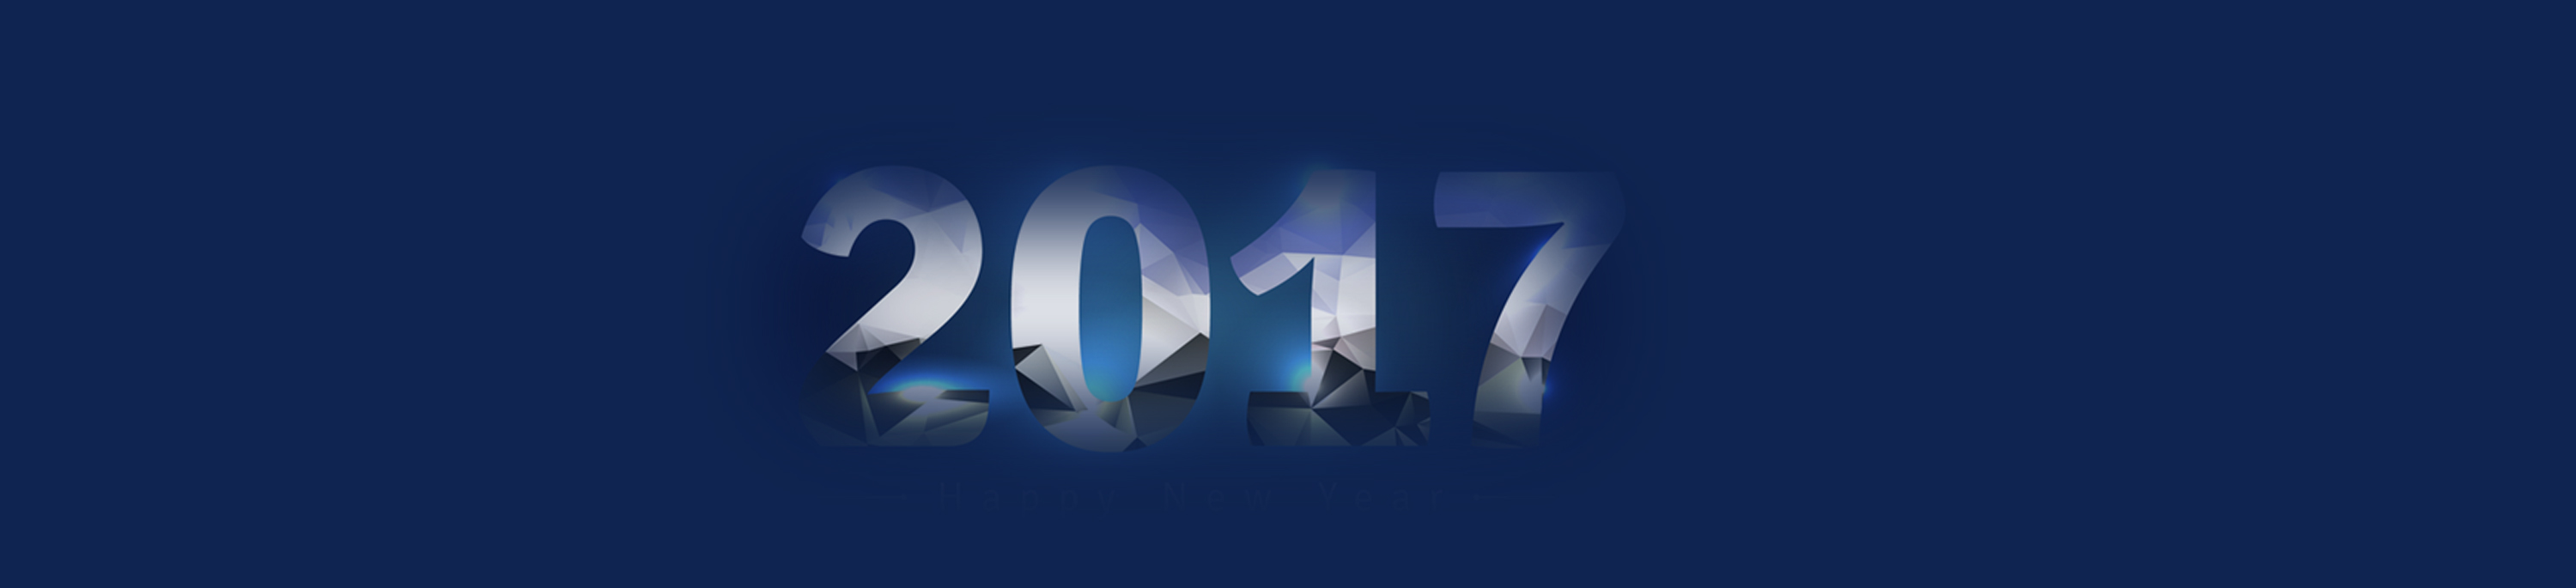 Amphenol Private Networks wishes you a Happy New Year!